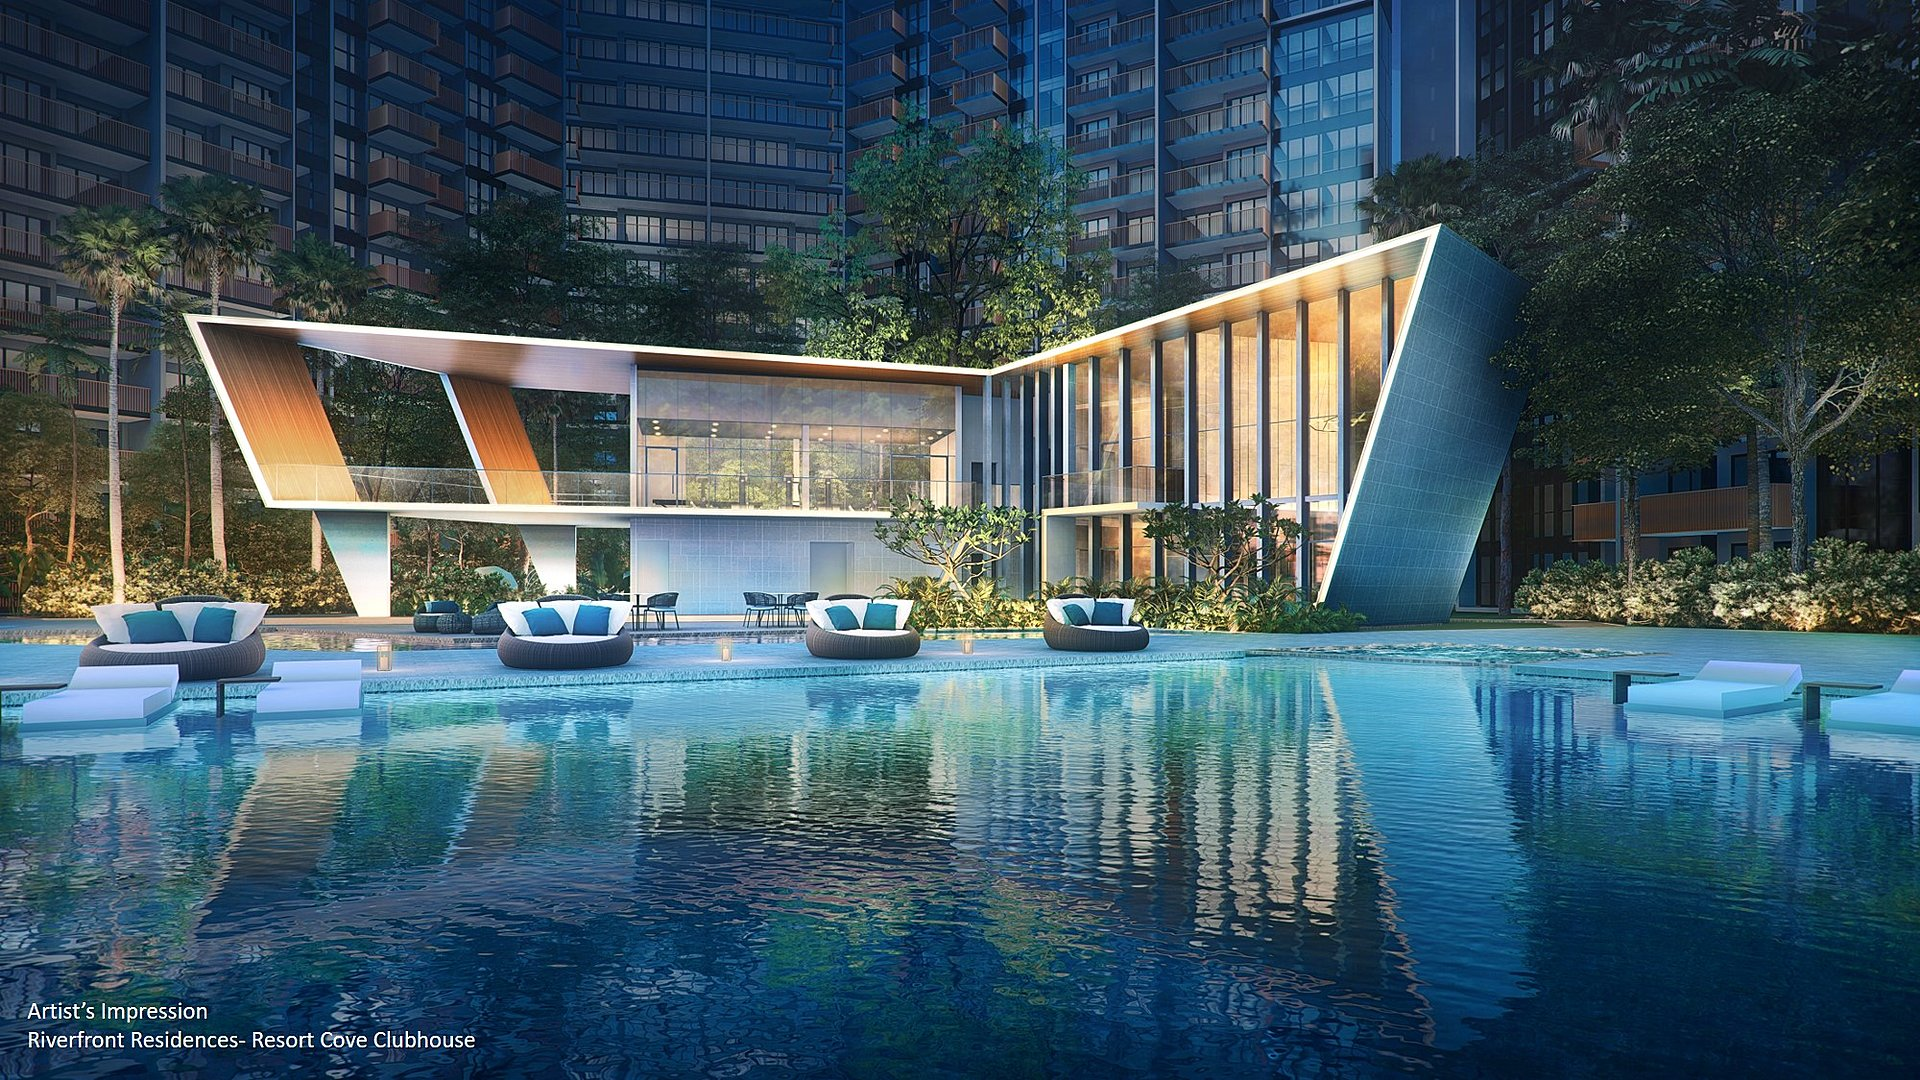 RIVERFRONT RESIDENCES WITH GREAT SCENERY AND AFFORDABLE PRICE